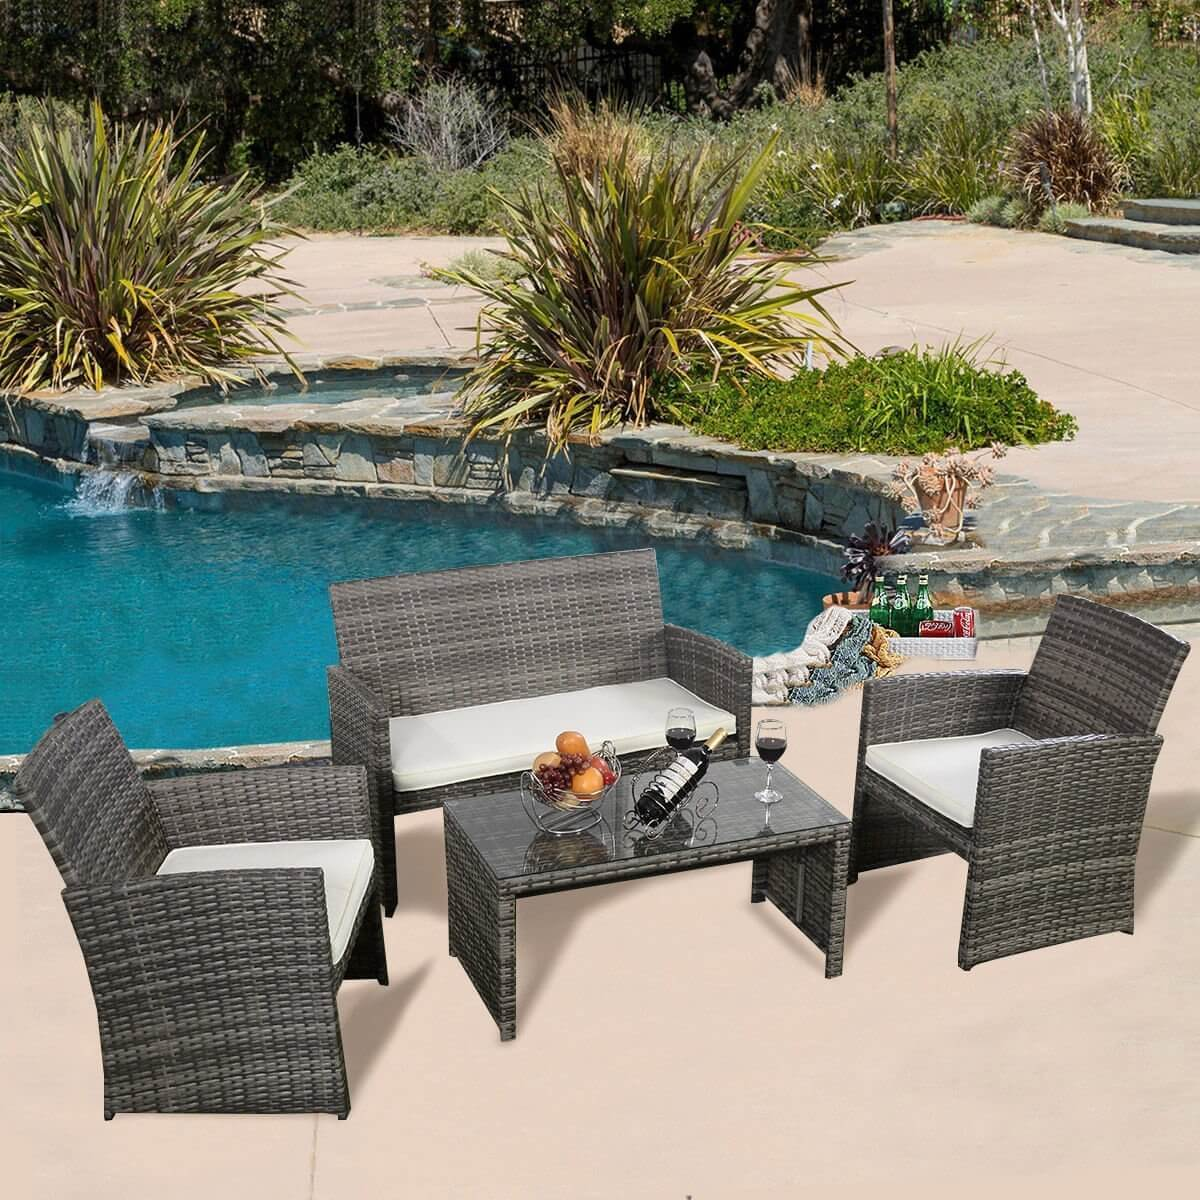 This lovely set of furniture has comfortable padded seats, strong metal frames, and a weaved rattan wicker. This combination makes these pieces both sturdy and comfortable. Your guests and family will be enjoying your backyard space in comfort with this set.